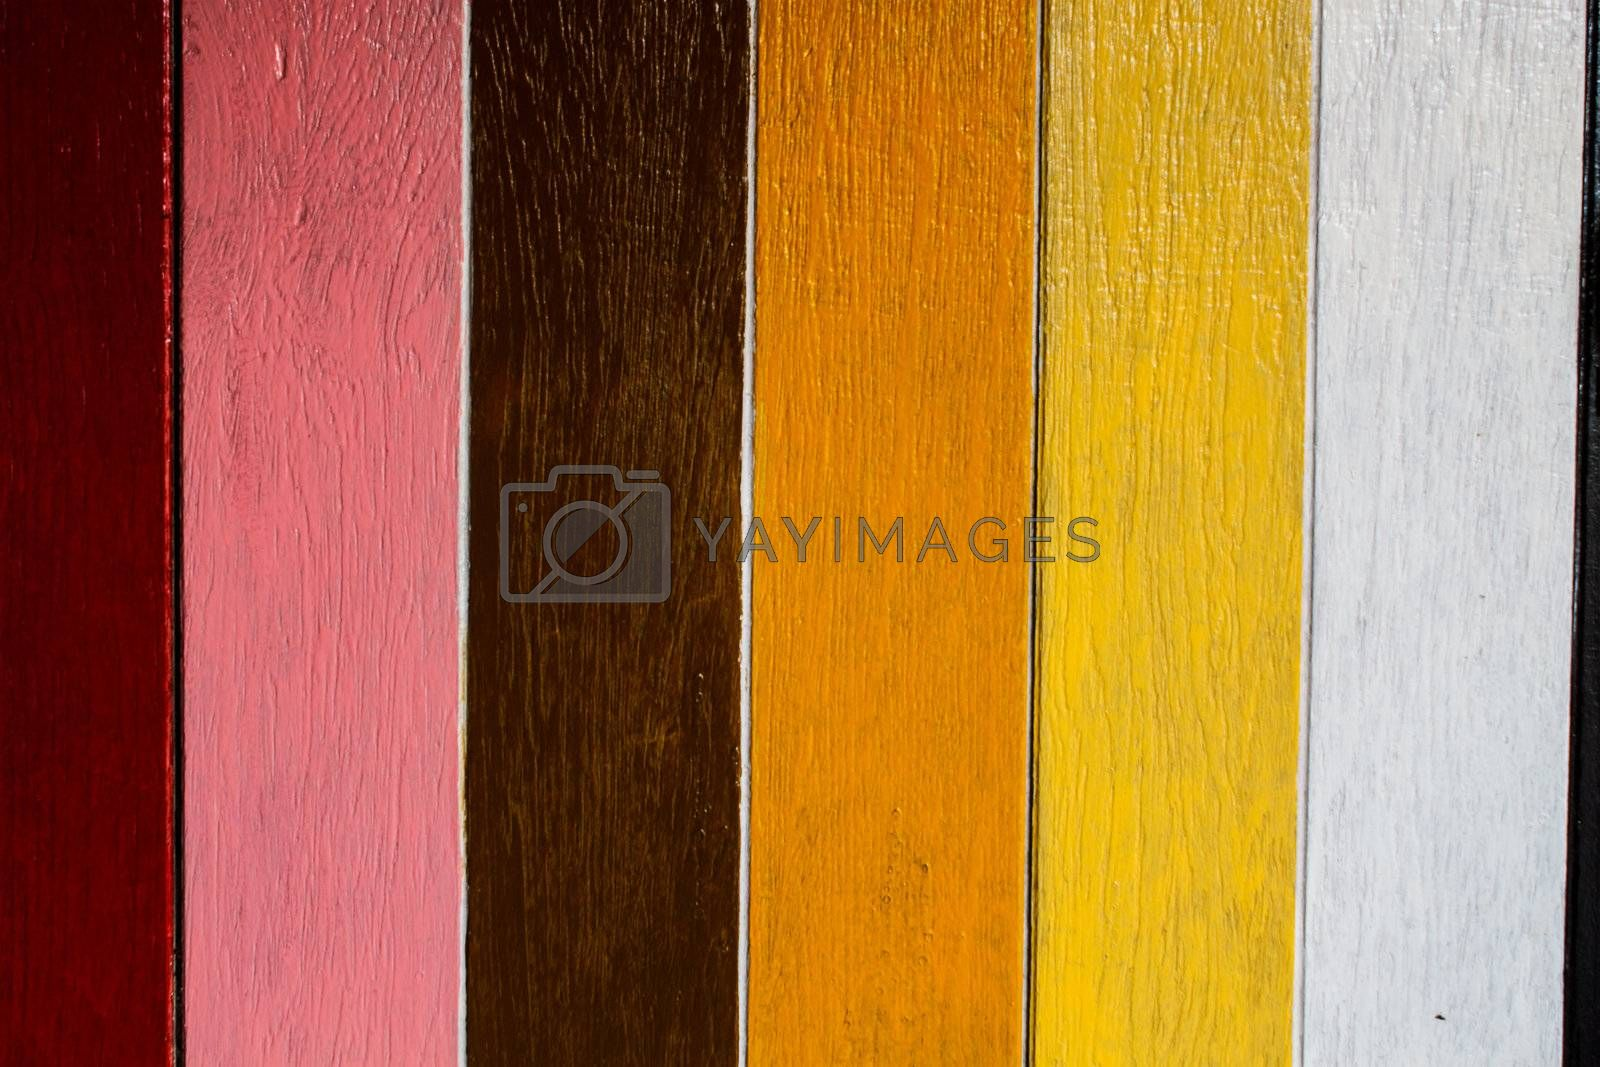 colorful wooden door or wall